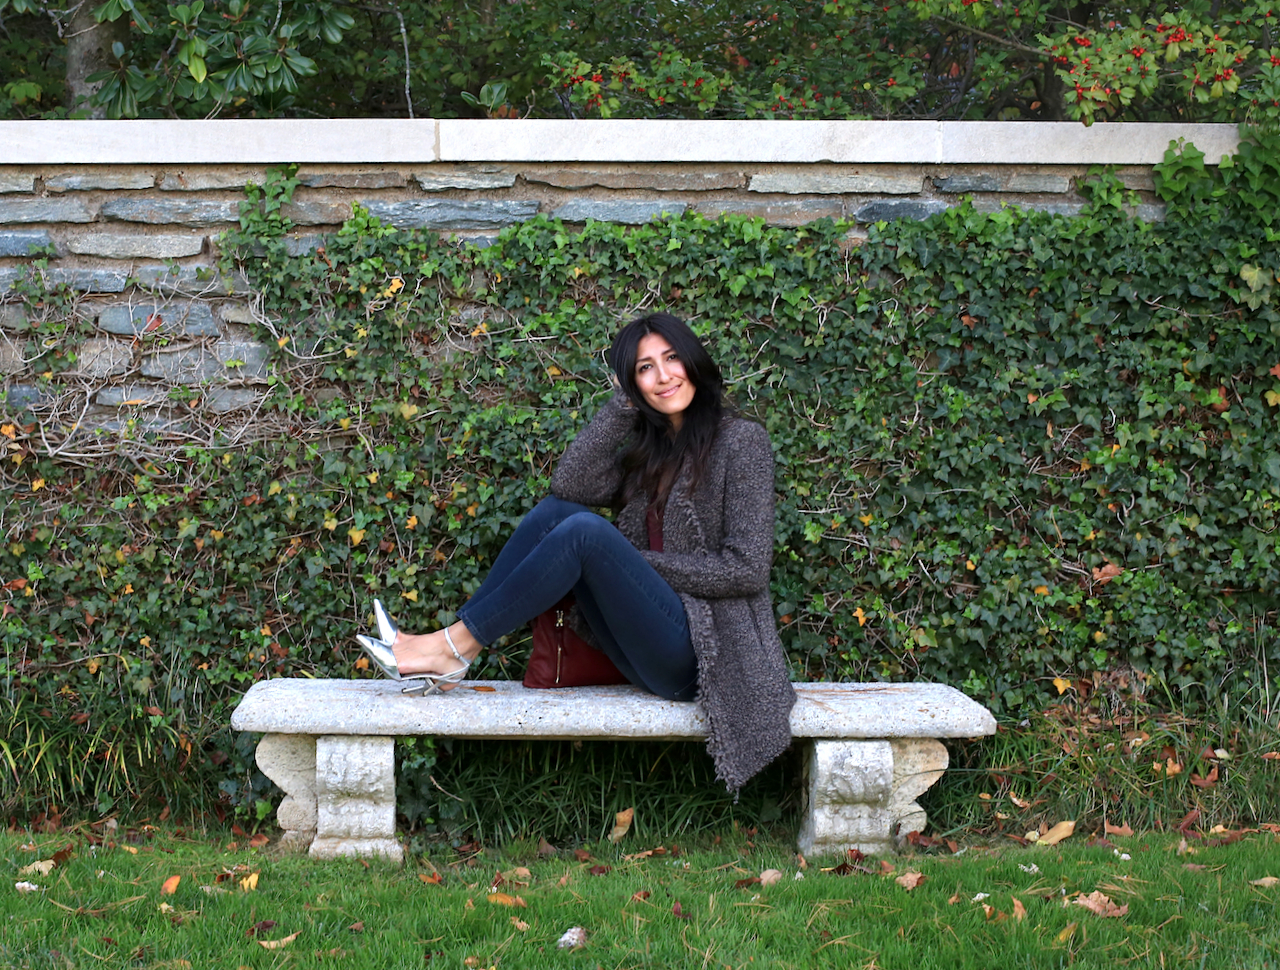 dumbarton-oaks-back-lawn-sitting-bench-iro-jacket